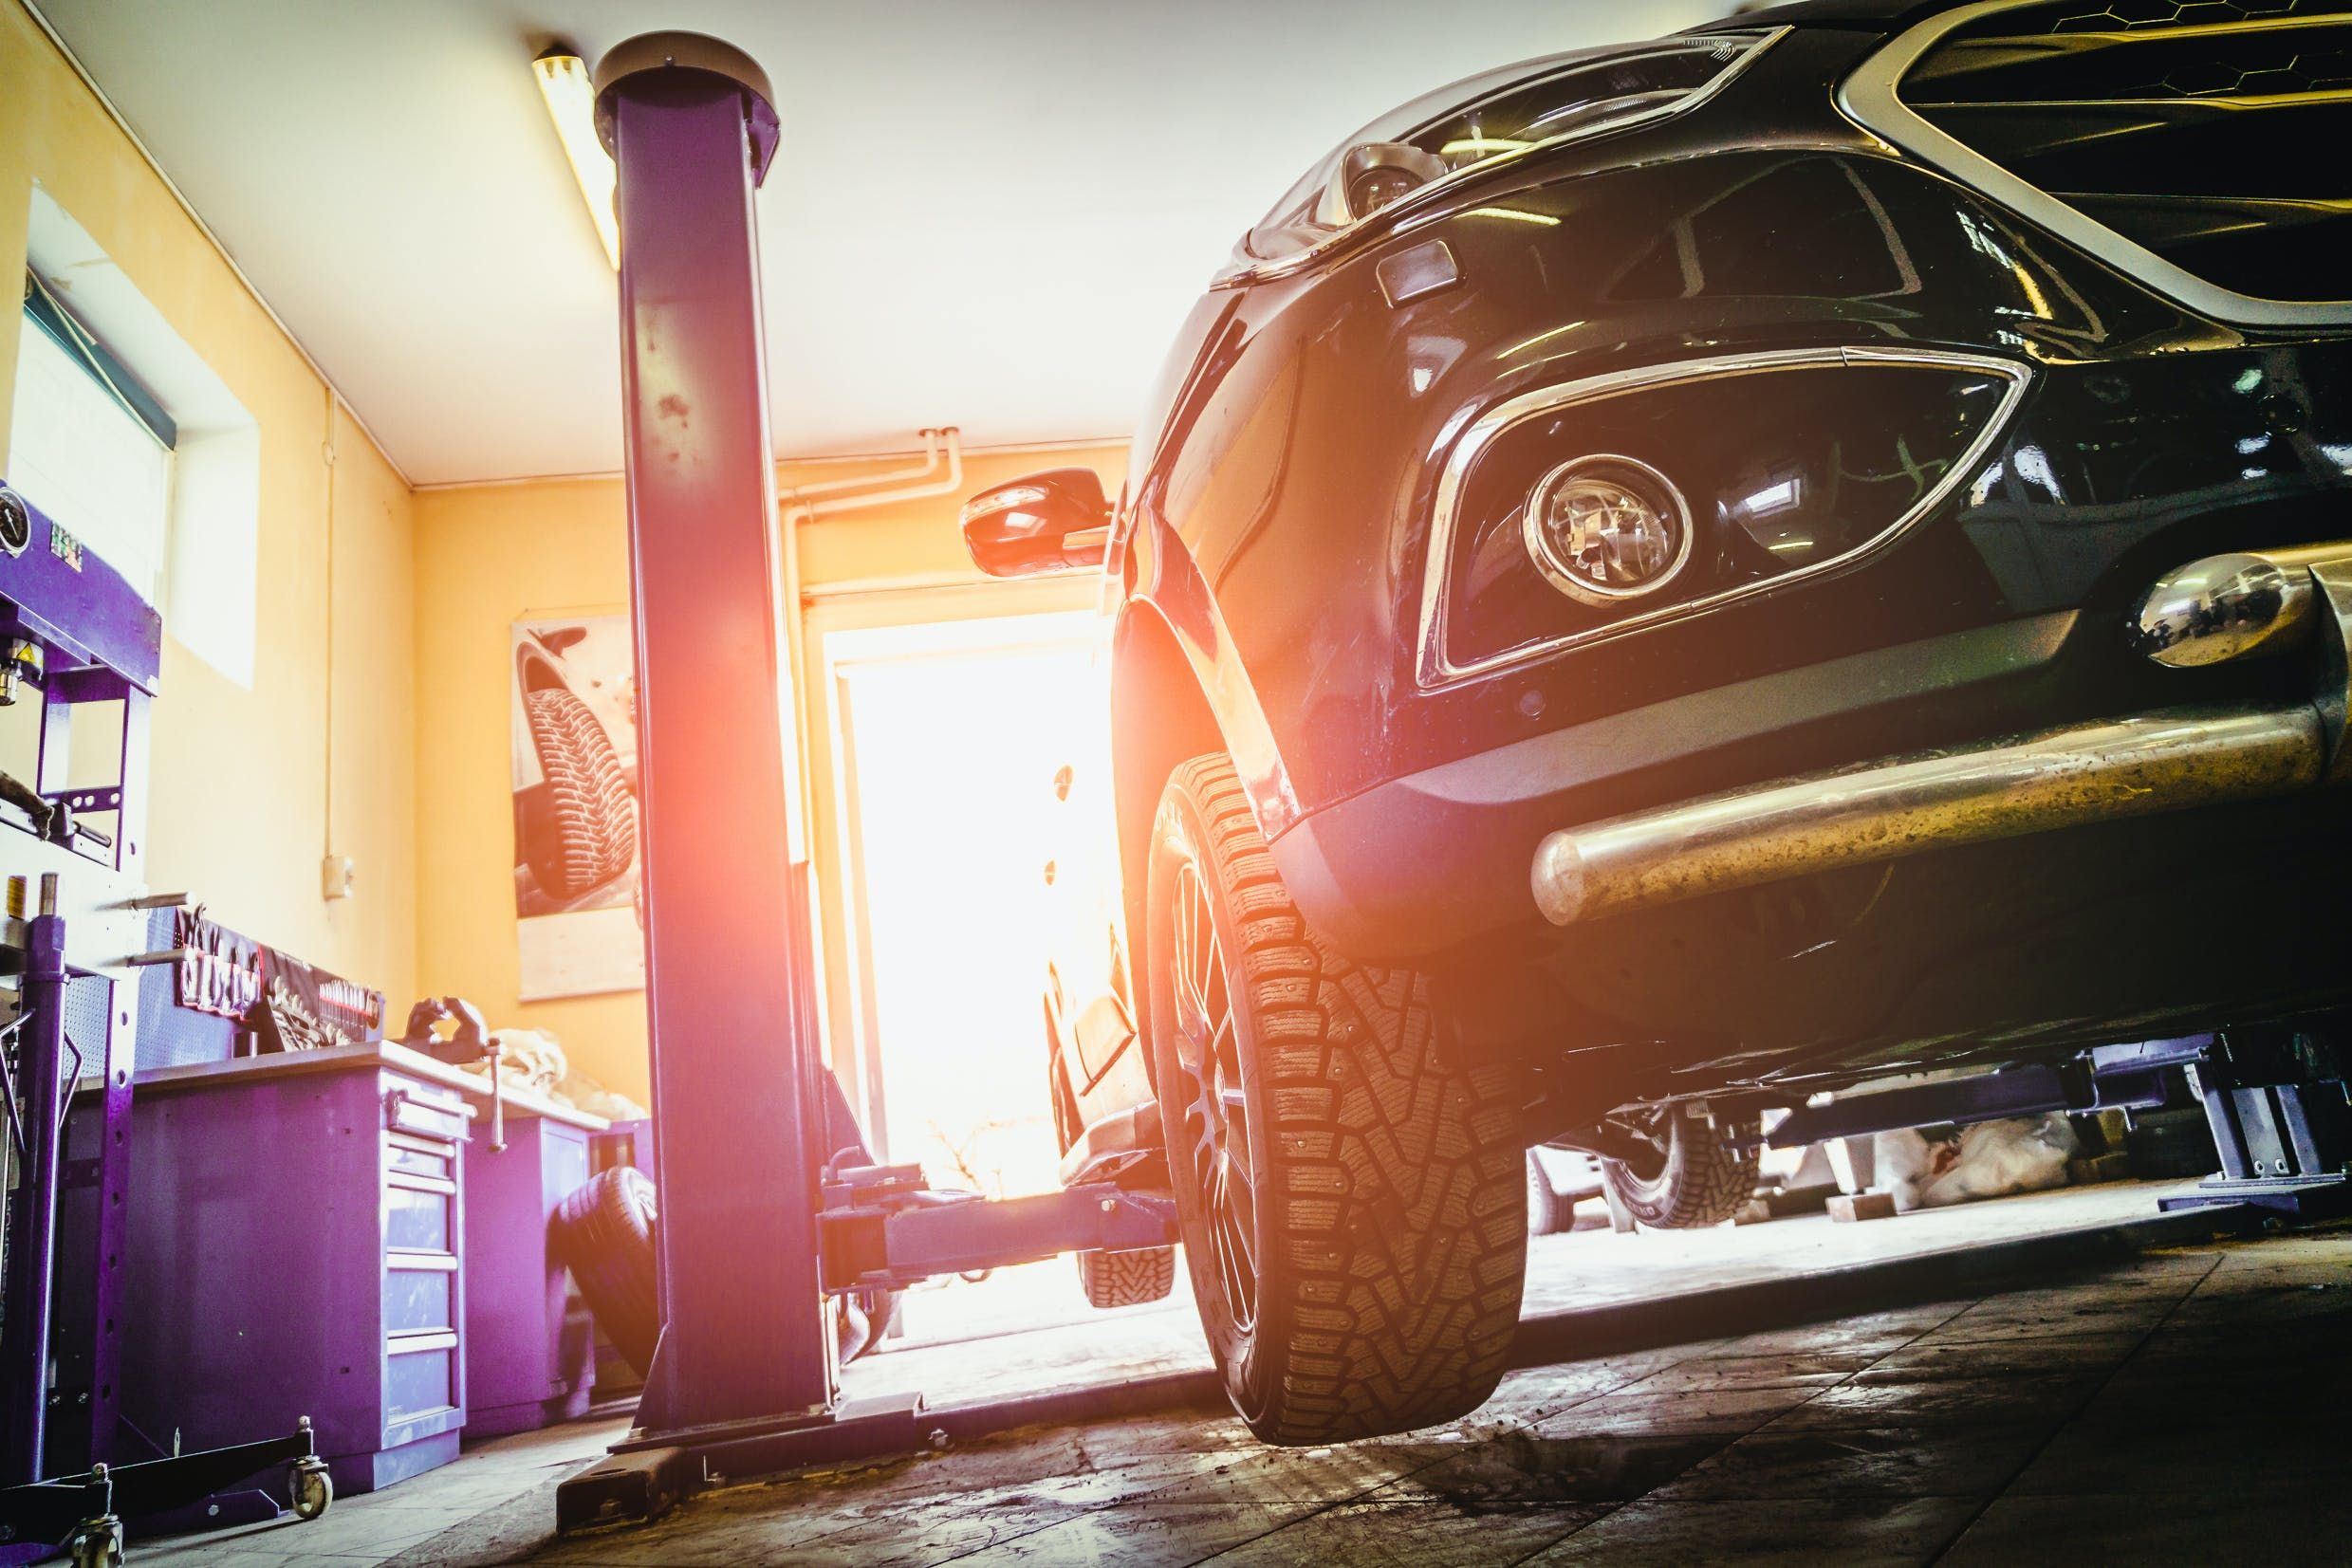 Expert Guide to Green Garages for Fleets